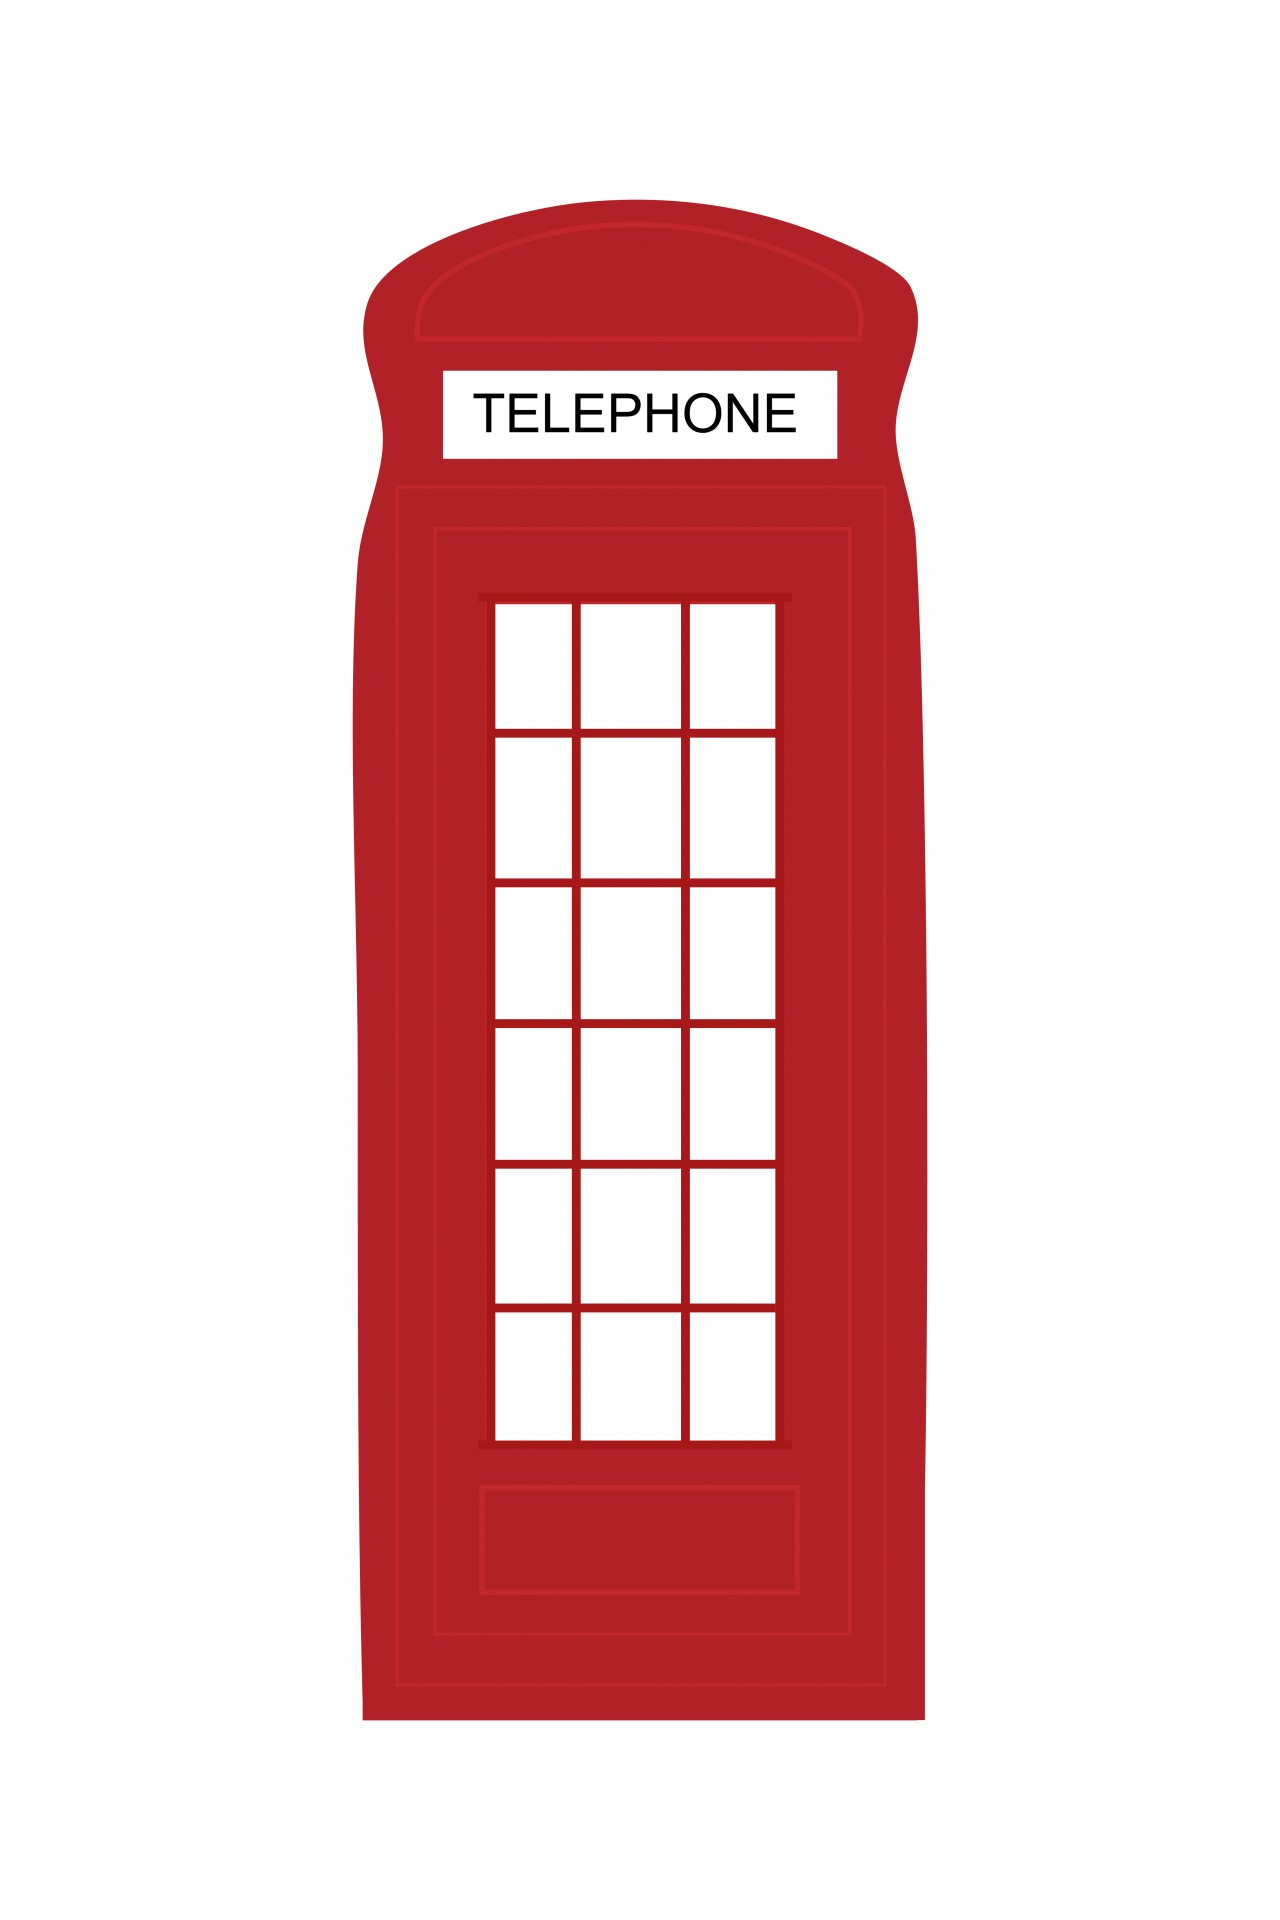 Booth clipart telephone london booth. Box free stock photo